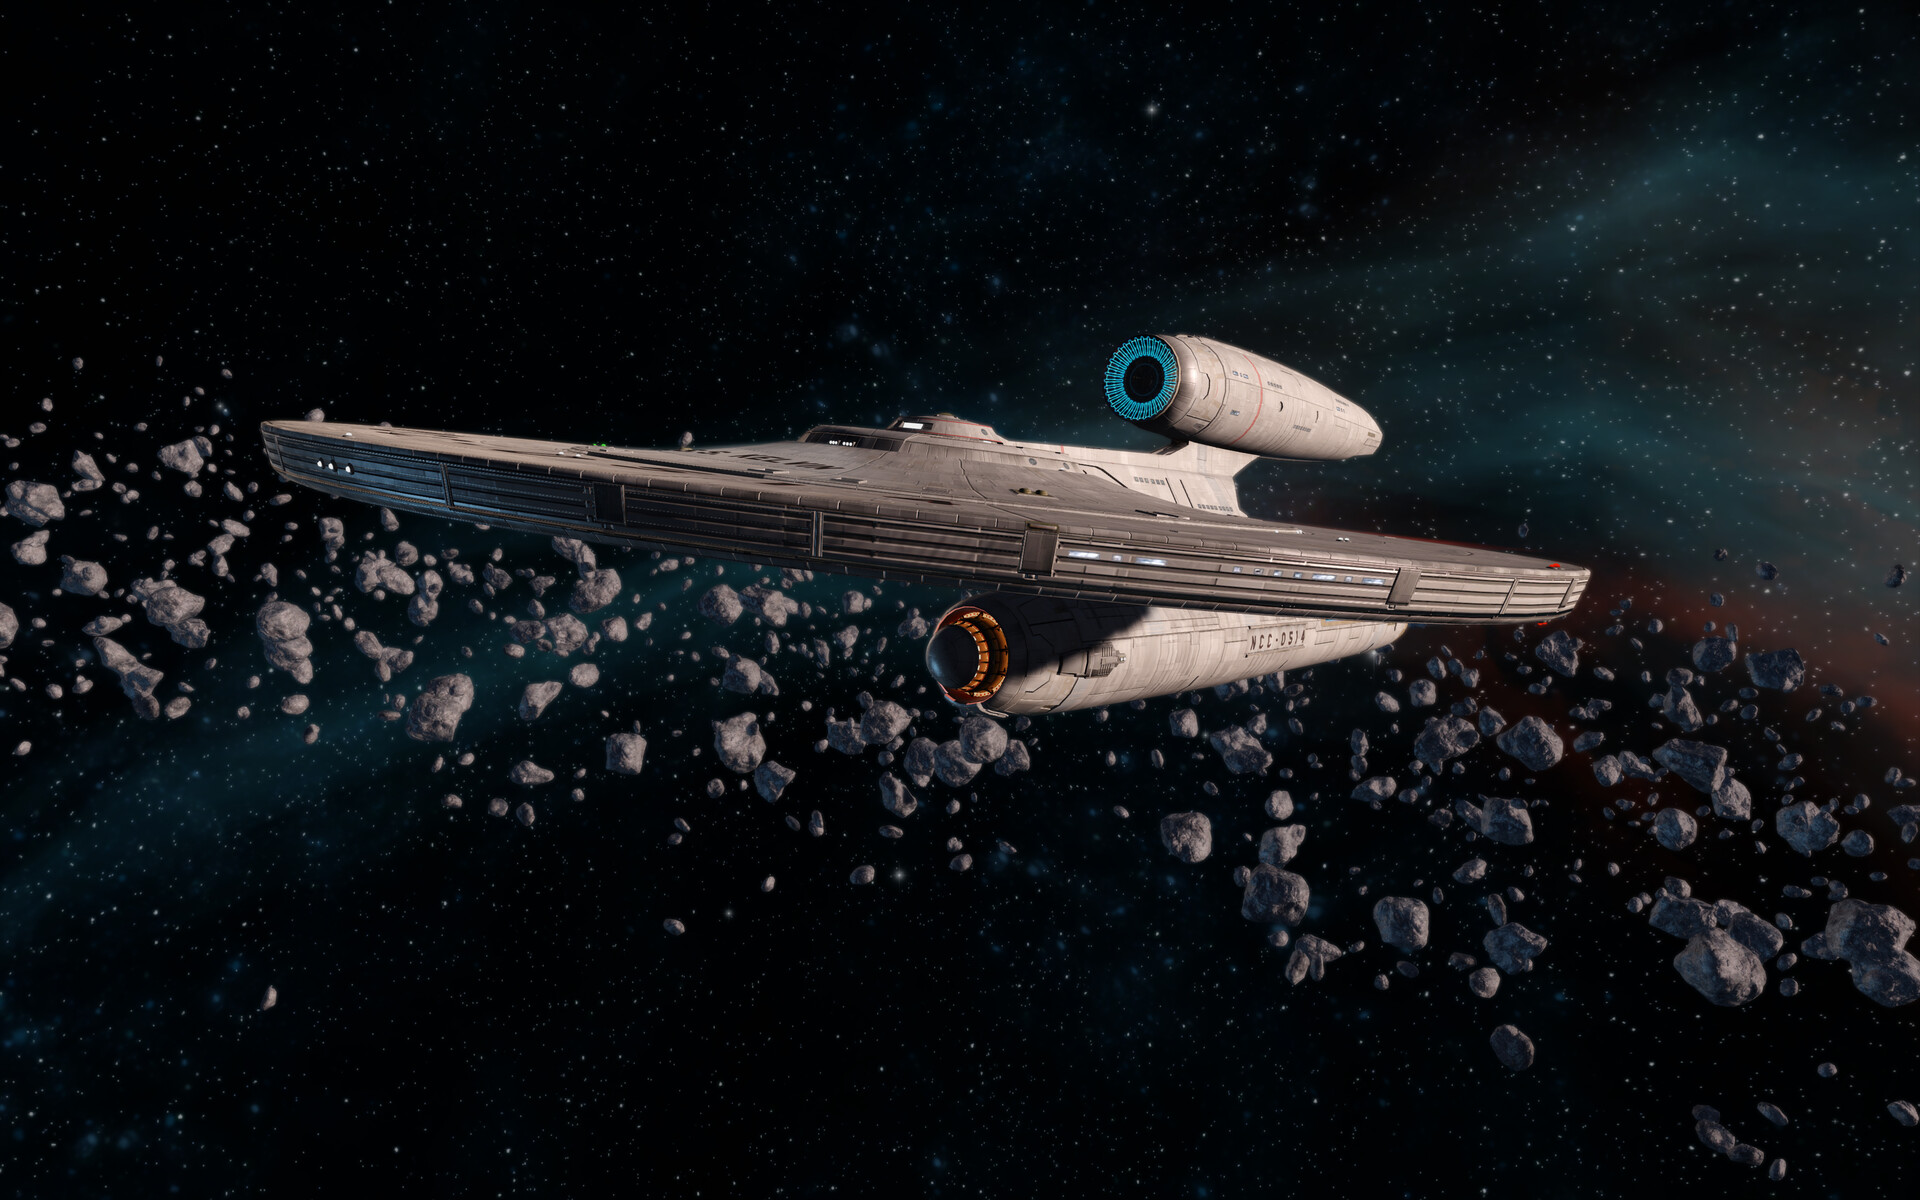 Star Trek Online in-game screenshot - Model by Tobias Richter, material by Thomas Marrone